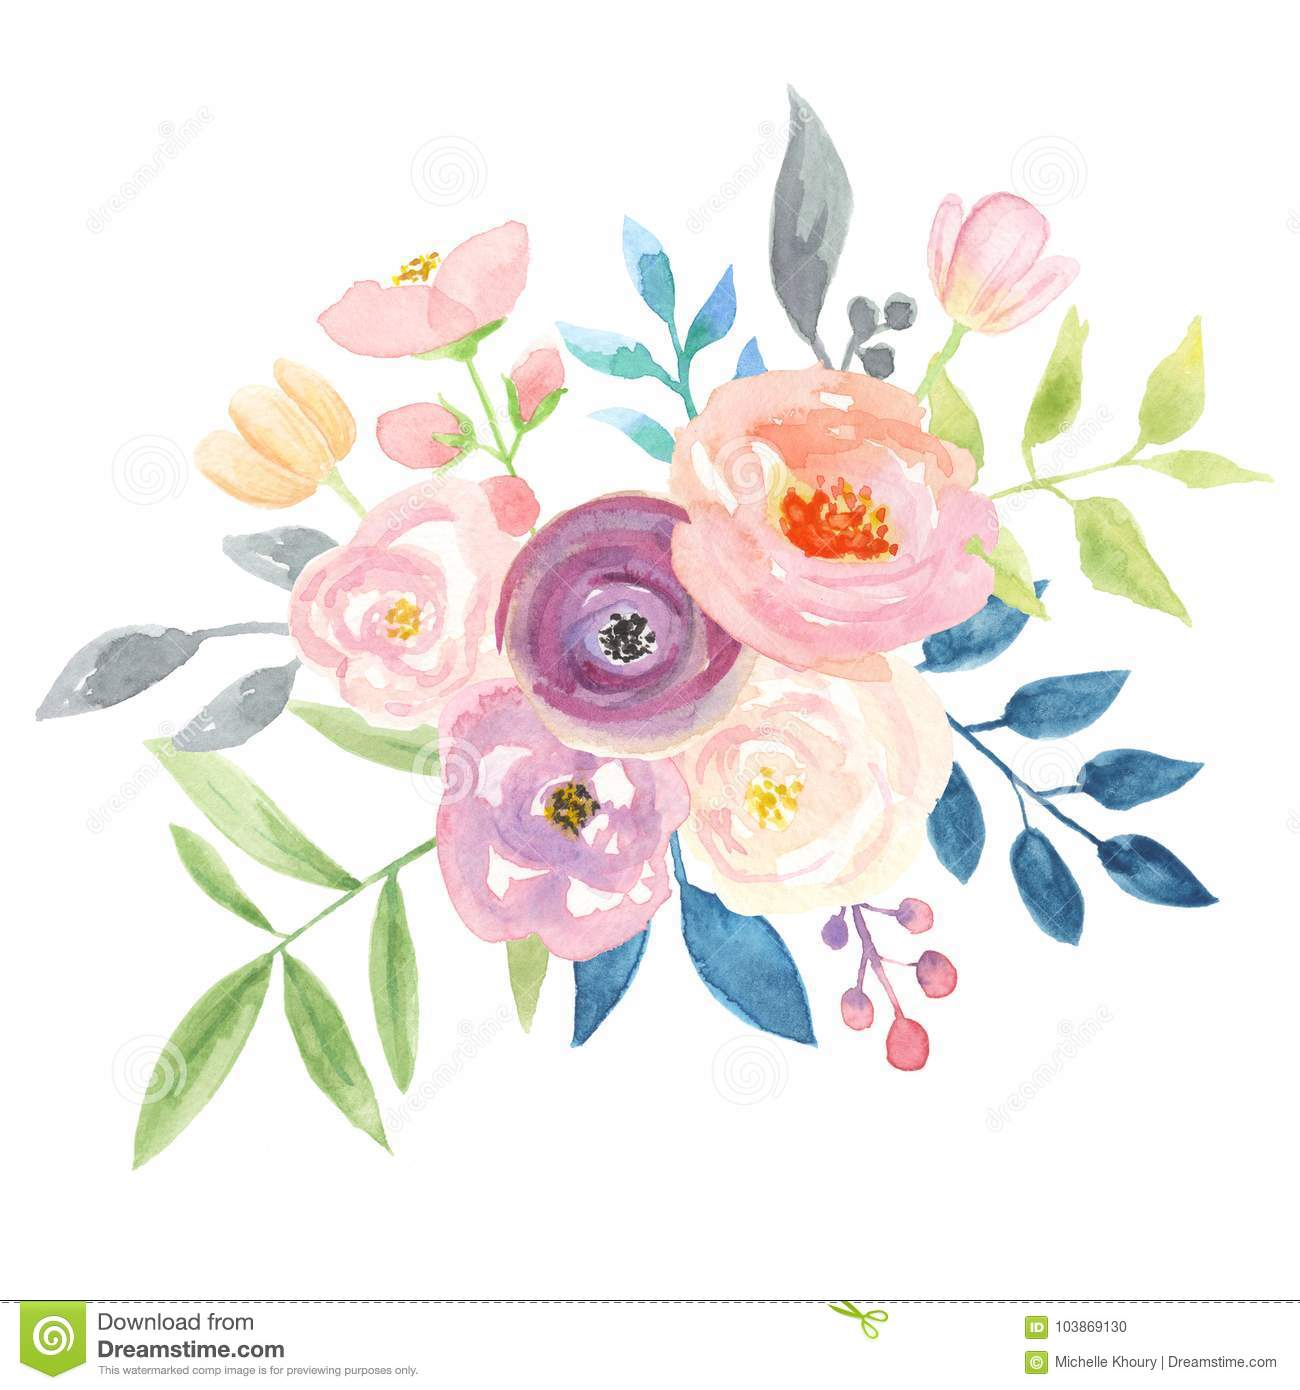 Watercolour berries bouquet arrangement pretty pink wedding flowers download watercolour berries bouquet arrangement pretty pink wedding flowers stock illustration illustration of blue izmirmasajfo